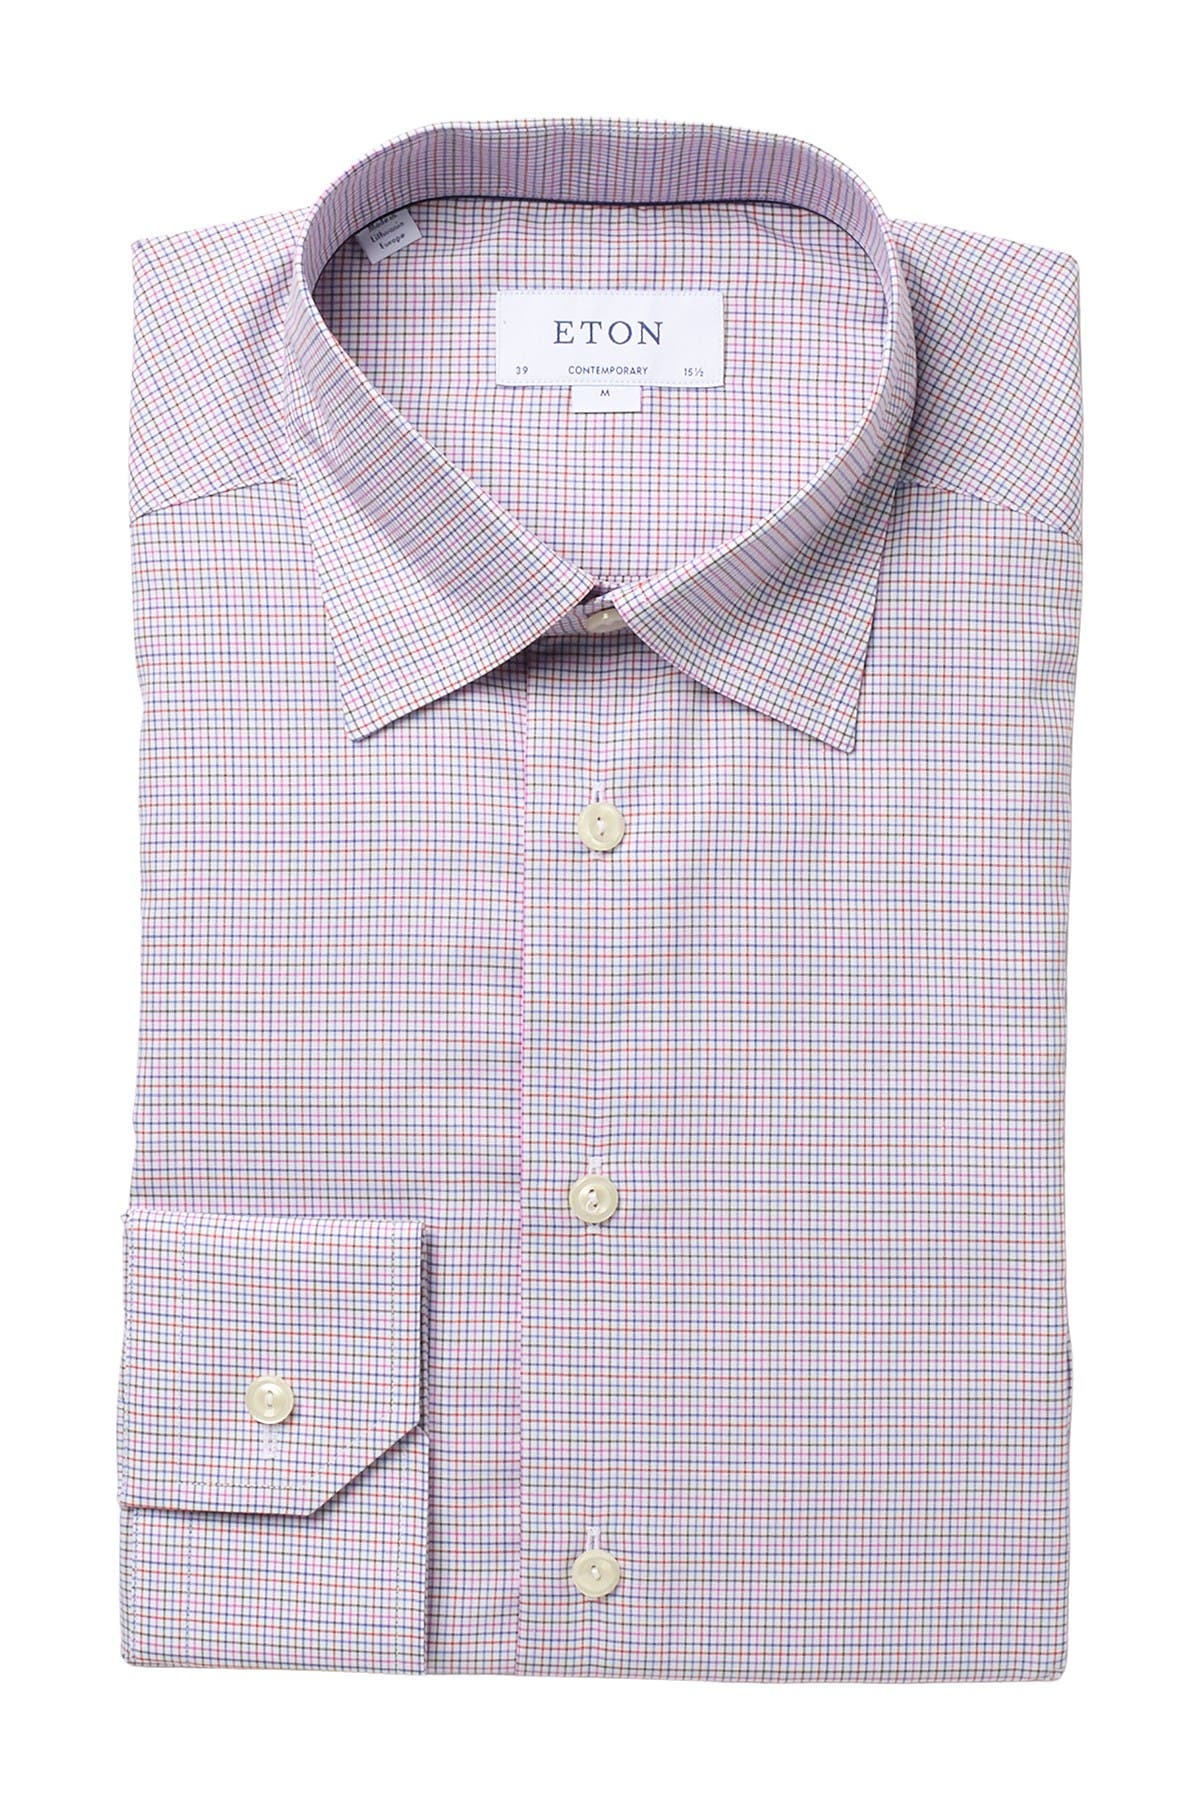 Image of Eton Grid Twill Contemporary Fit Dress Shirt